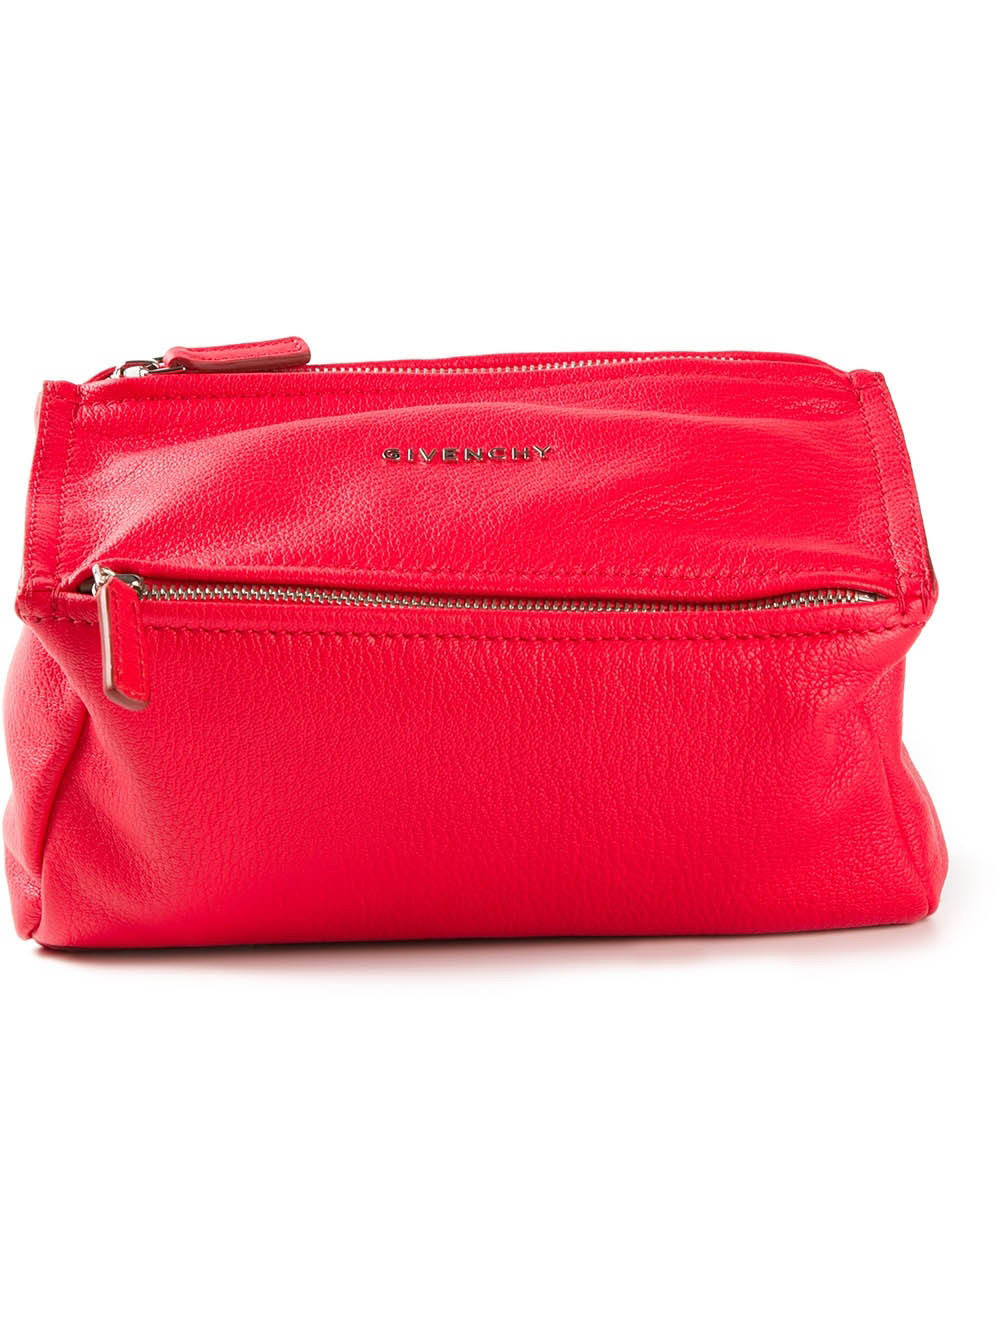 Givenchy Borsa Mini Pandora Rossa in Red (ROSSO) | Lyst